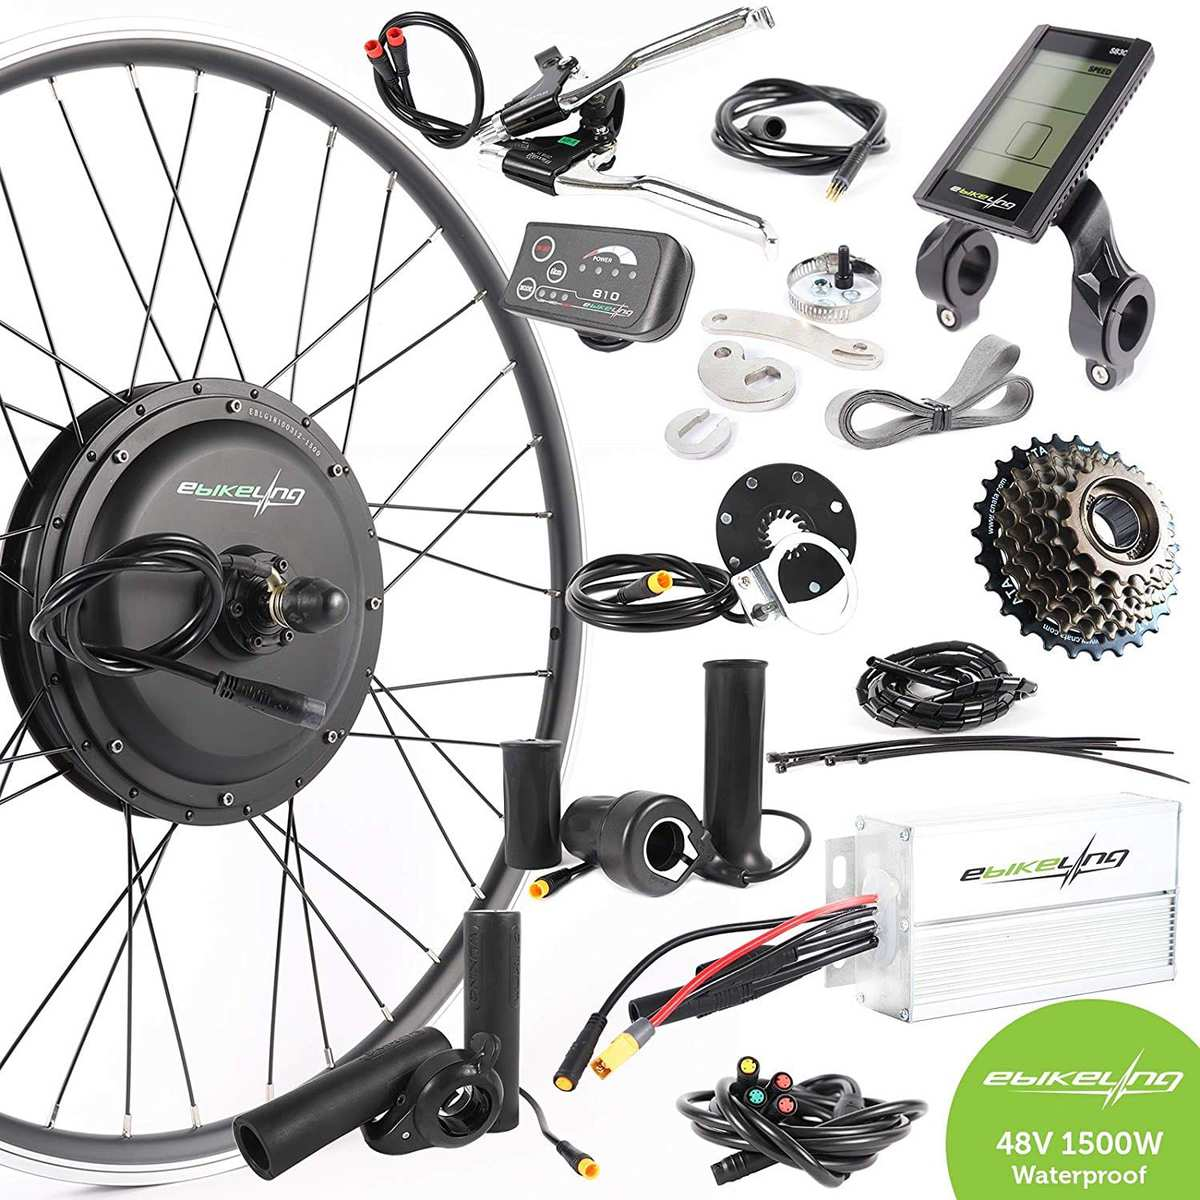 48V 1500W Front Rear Wheel Electric Bicycle Motor Conversion Kit for Fat Tire